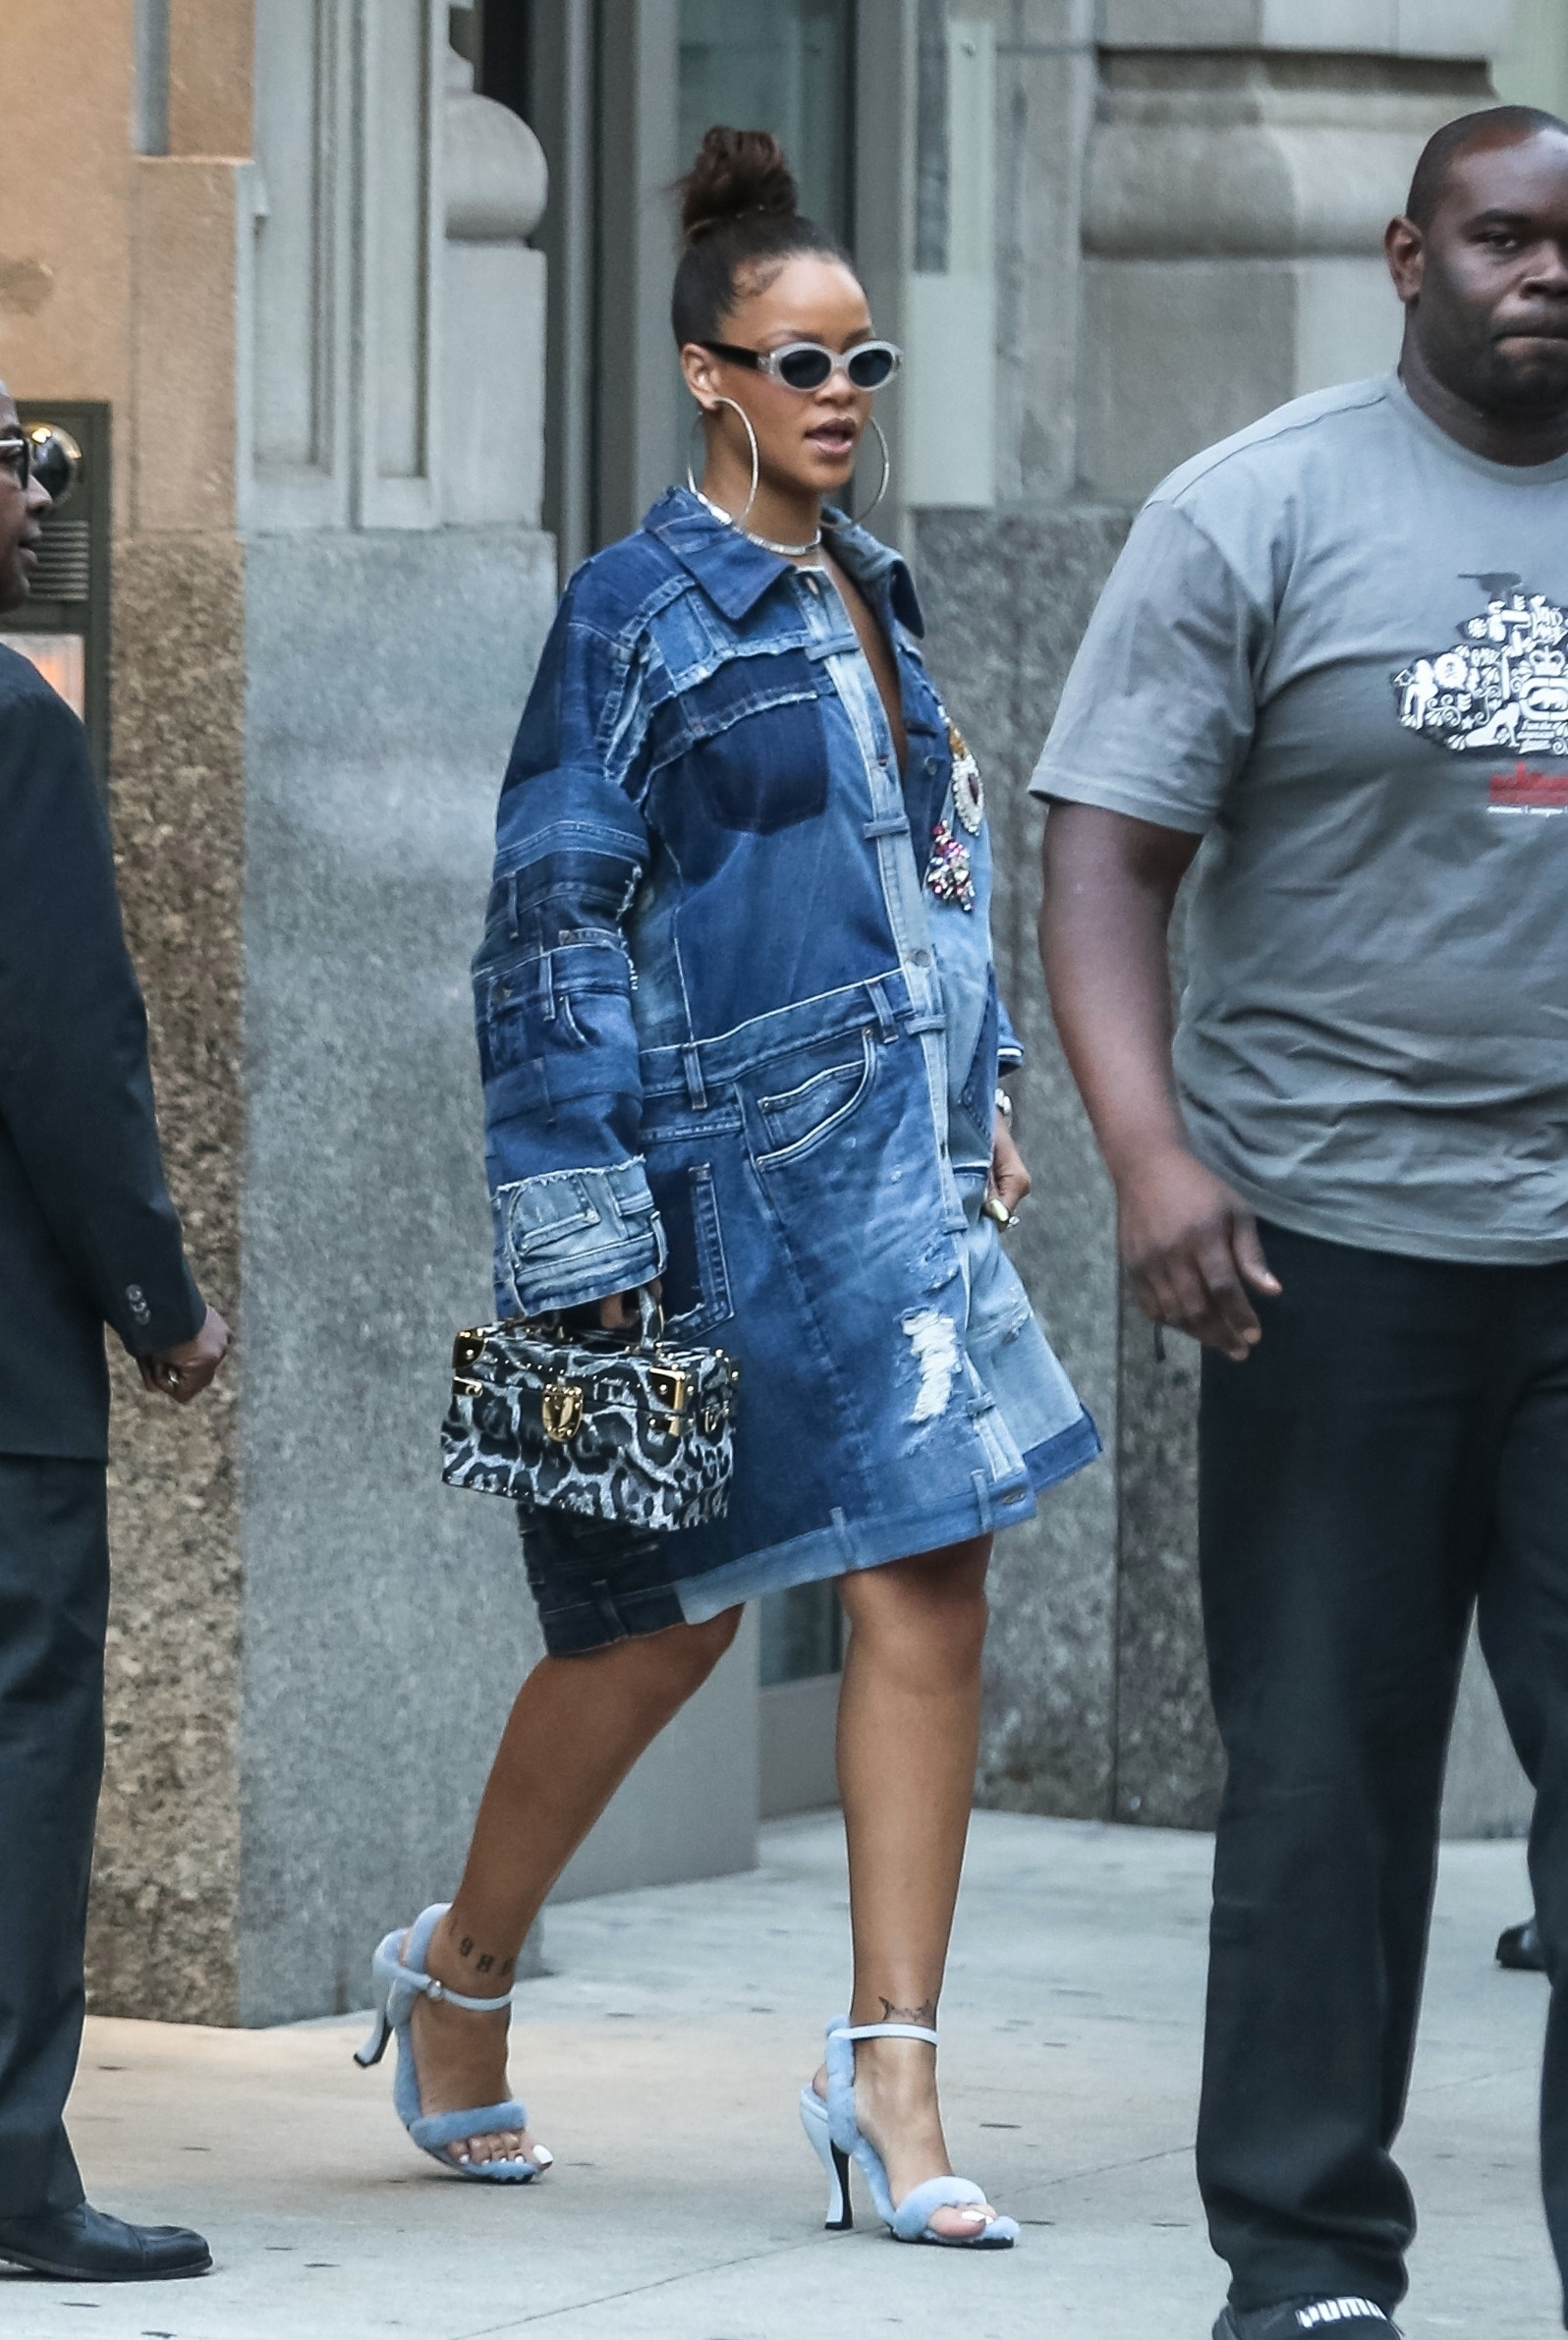 New York, NY  - Rihanna steps out for some apartment hunting in the financial district of New York. Rihanna was rocking a patchwork denim dress and blue heels.  Pictured: Rihanna    *UK Clients - Pictures Containing Children Please Pixelate Face Prior To Publication*, Image: 349299939, License: Rights-managed, Restrictions: , Model Release: no, Credit line: BACKGRID / Backgrid USA / Profimedia